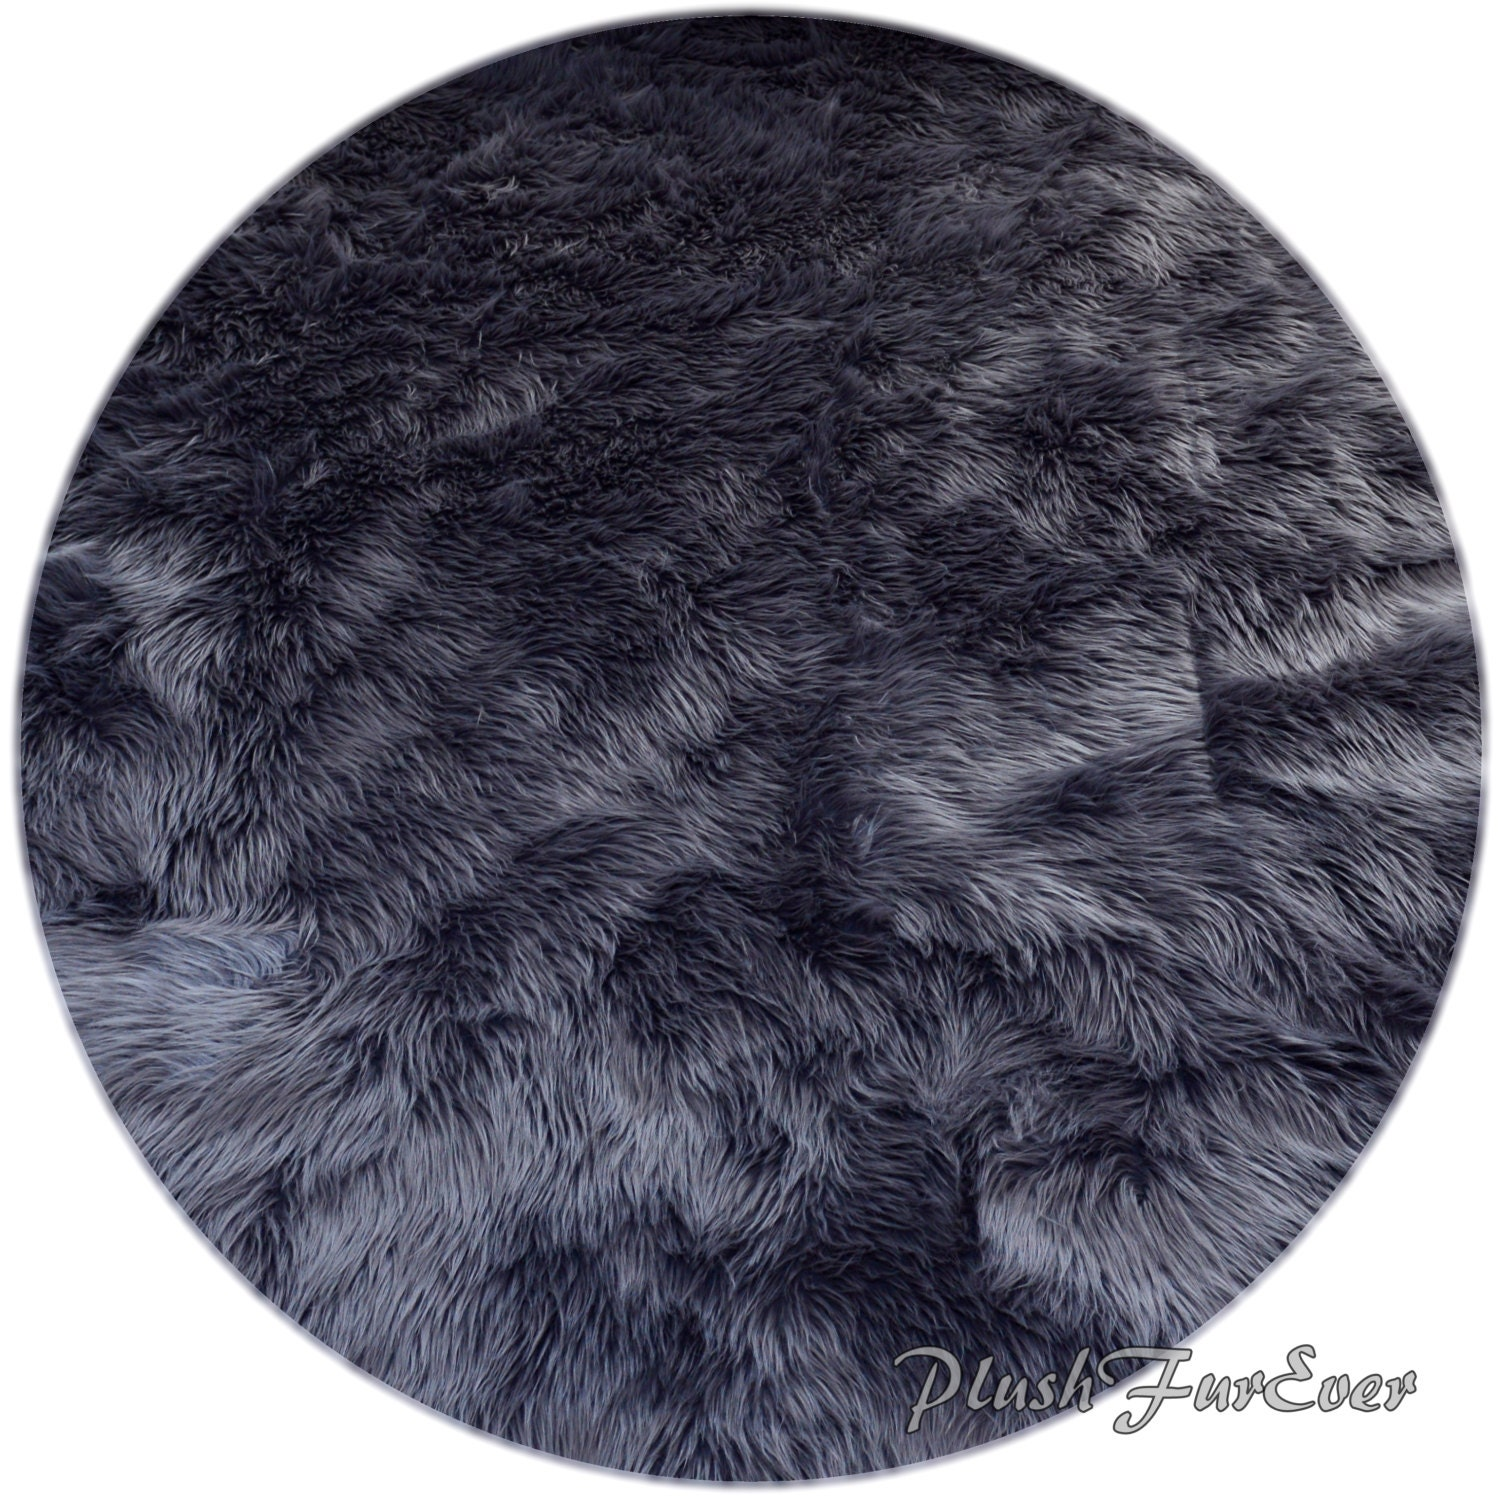 Gray Shaggy Sheepskin Premium Faux Fur Nursery Area Round Rugs